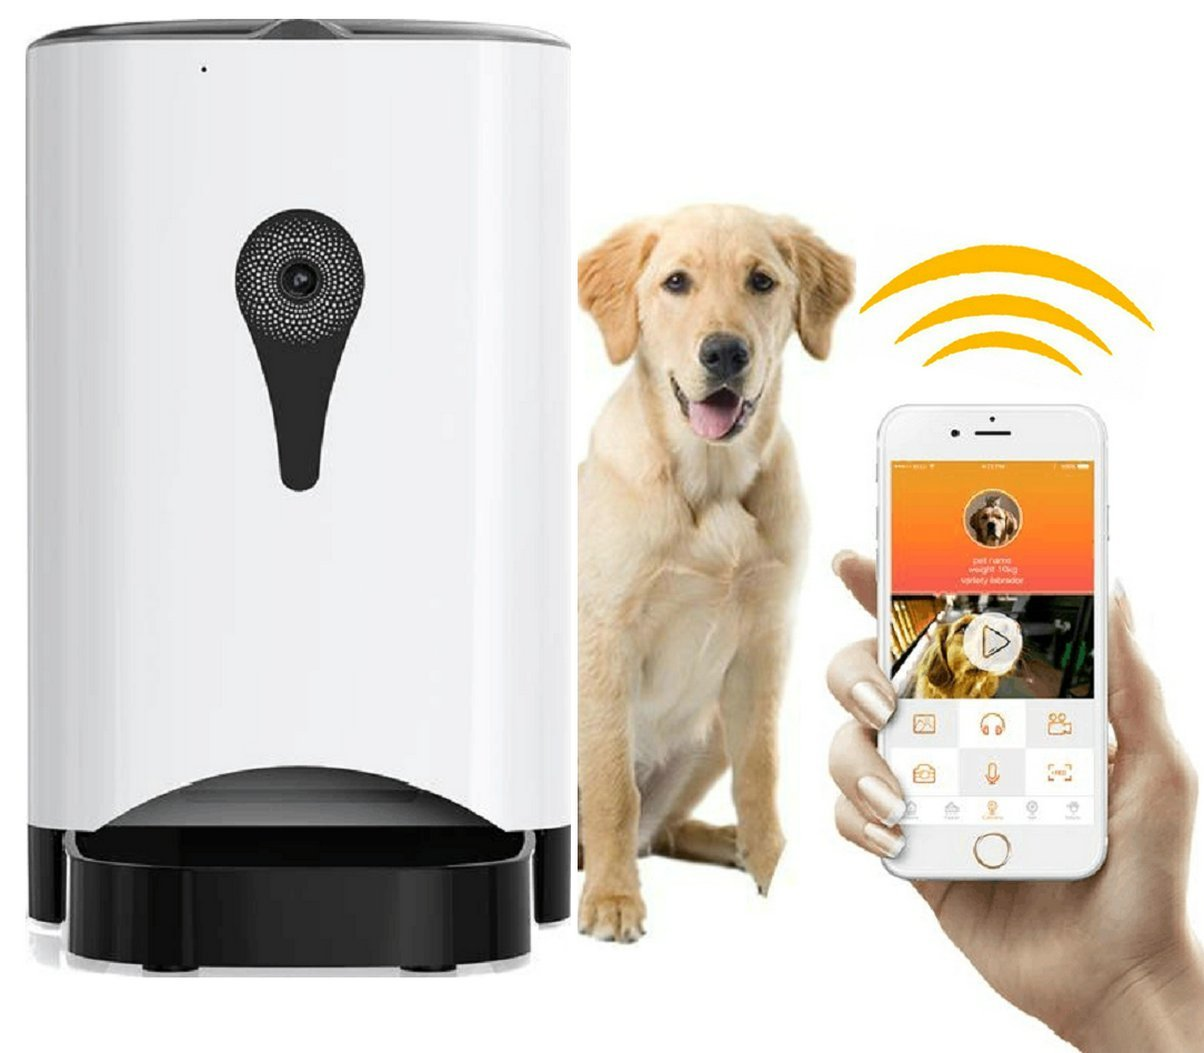 Automatic Pet Feeder Smart Food Dispenser for Dogs and Cats App Wi Fi Control Feeder for iPhone iOS and Andriod with Real Time HD Camera Voice Recording Portion Control Programmable Timer 5 L